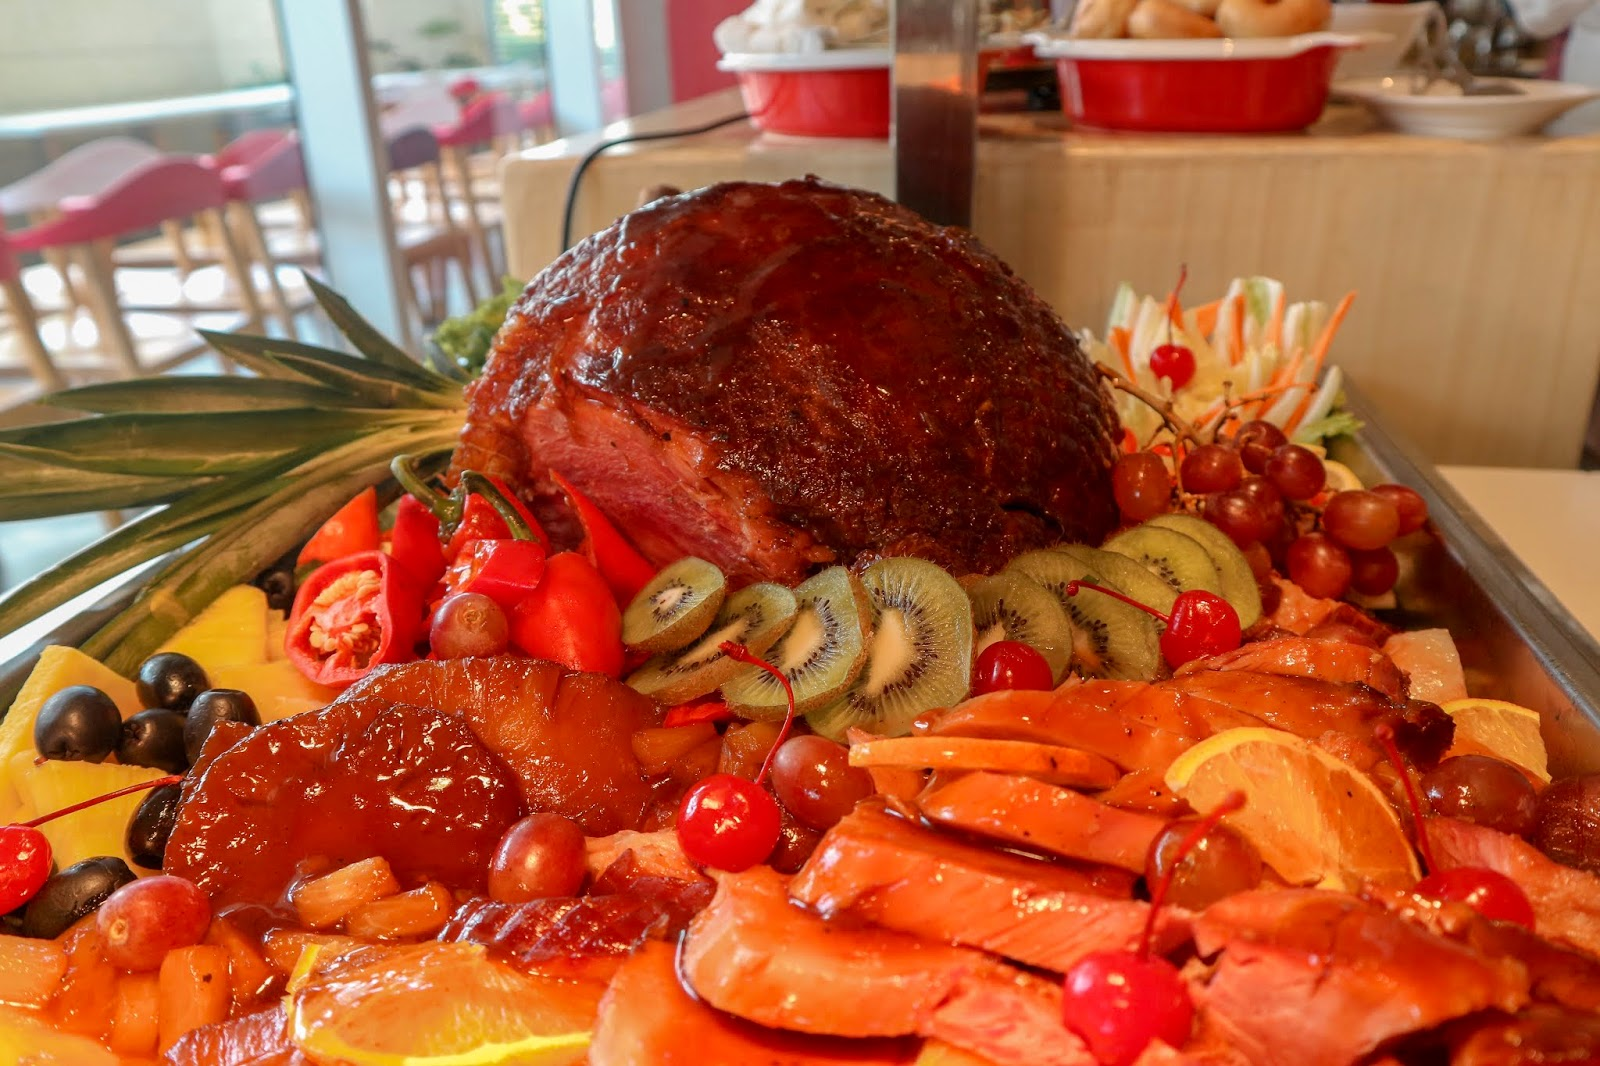 Spend the festive holiday season at Park Inn by Radisson Davao